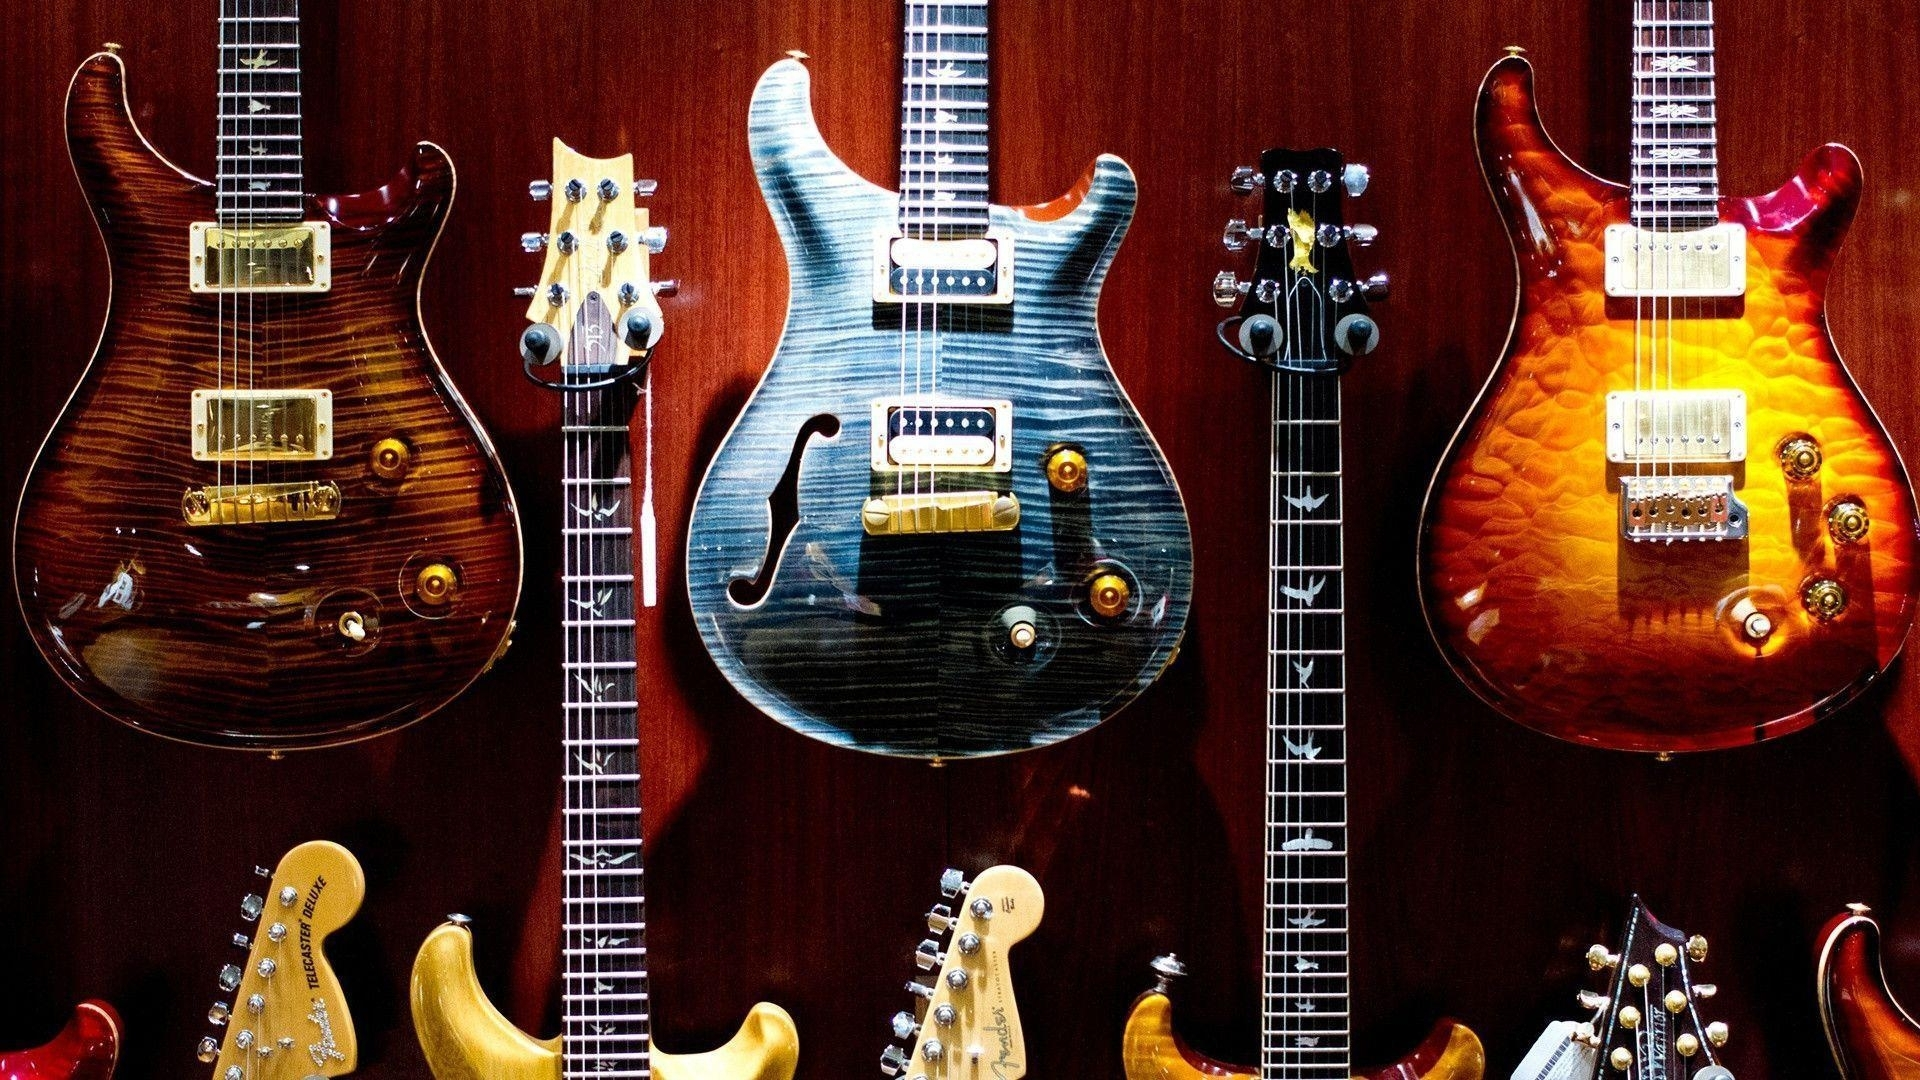 Title Electric Guitar Wallpapers Wallpaper Cave Dimension 1920 X 1080 File Type JPG JPEG